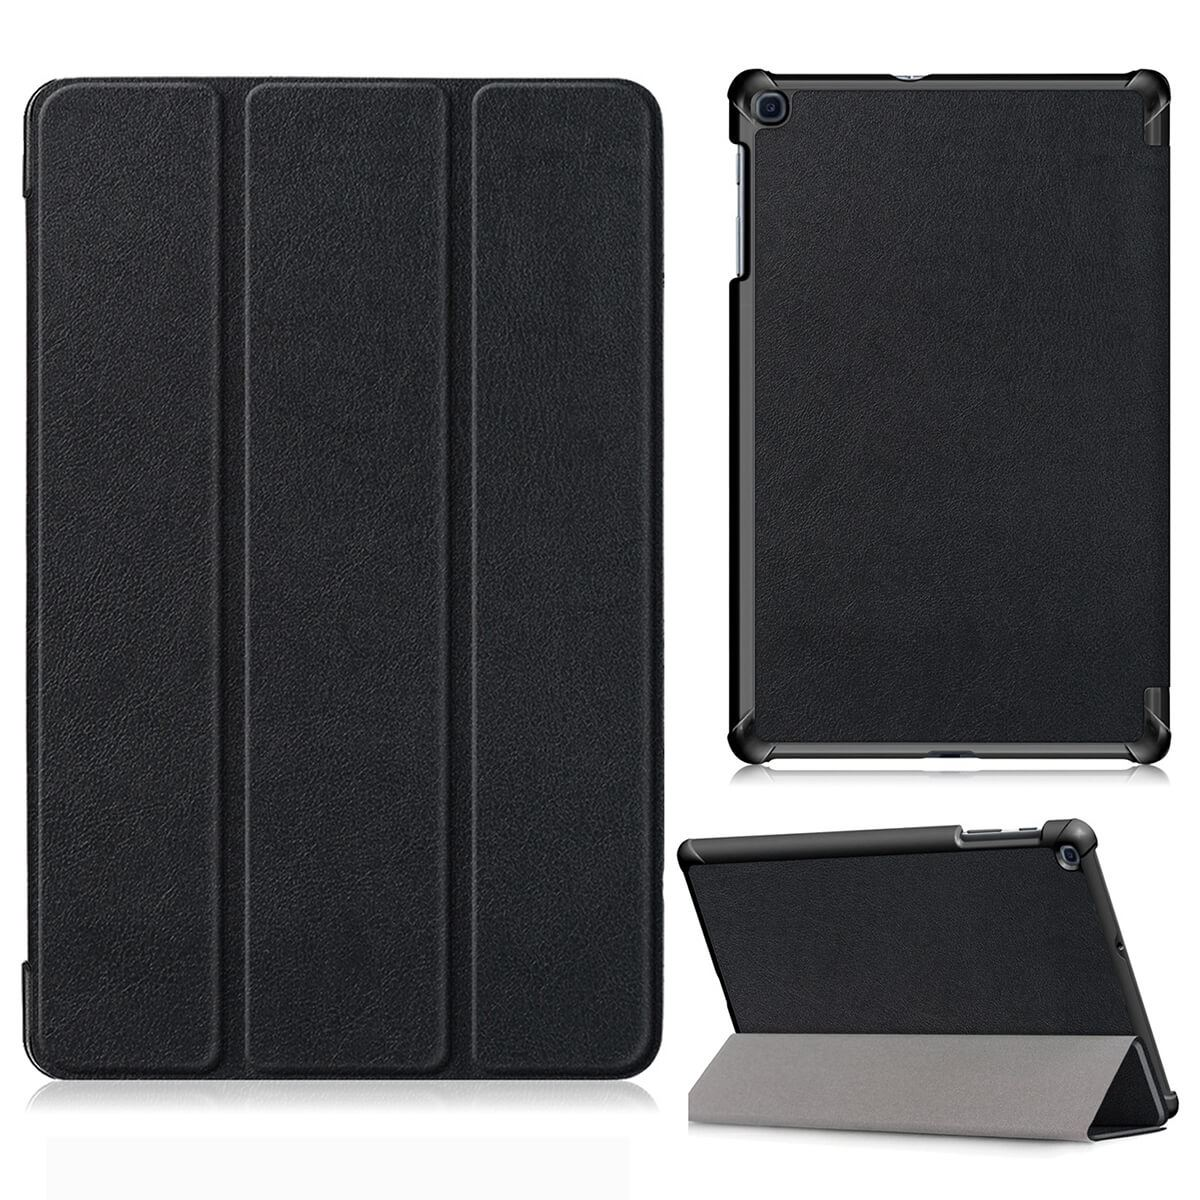 Flip-Cover-Trifold-Case-For-T510-T515-Samsung-Galaxy-Tab-A-2019-10-1-Full-Body thumbnail 10